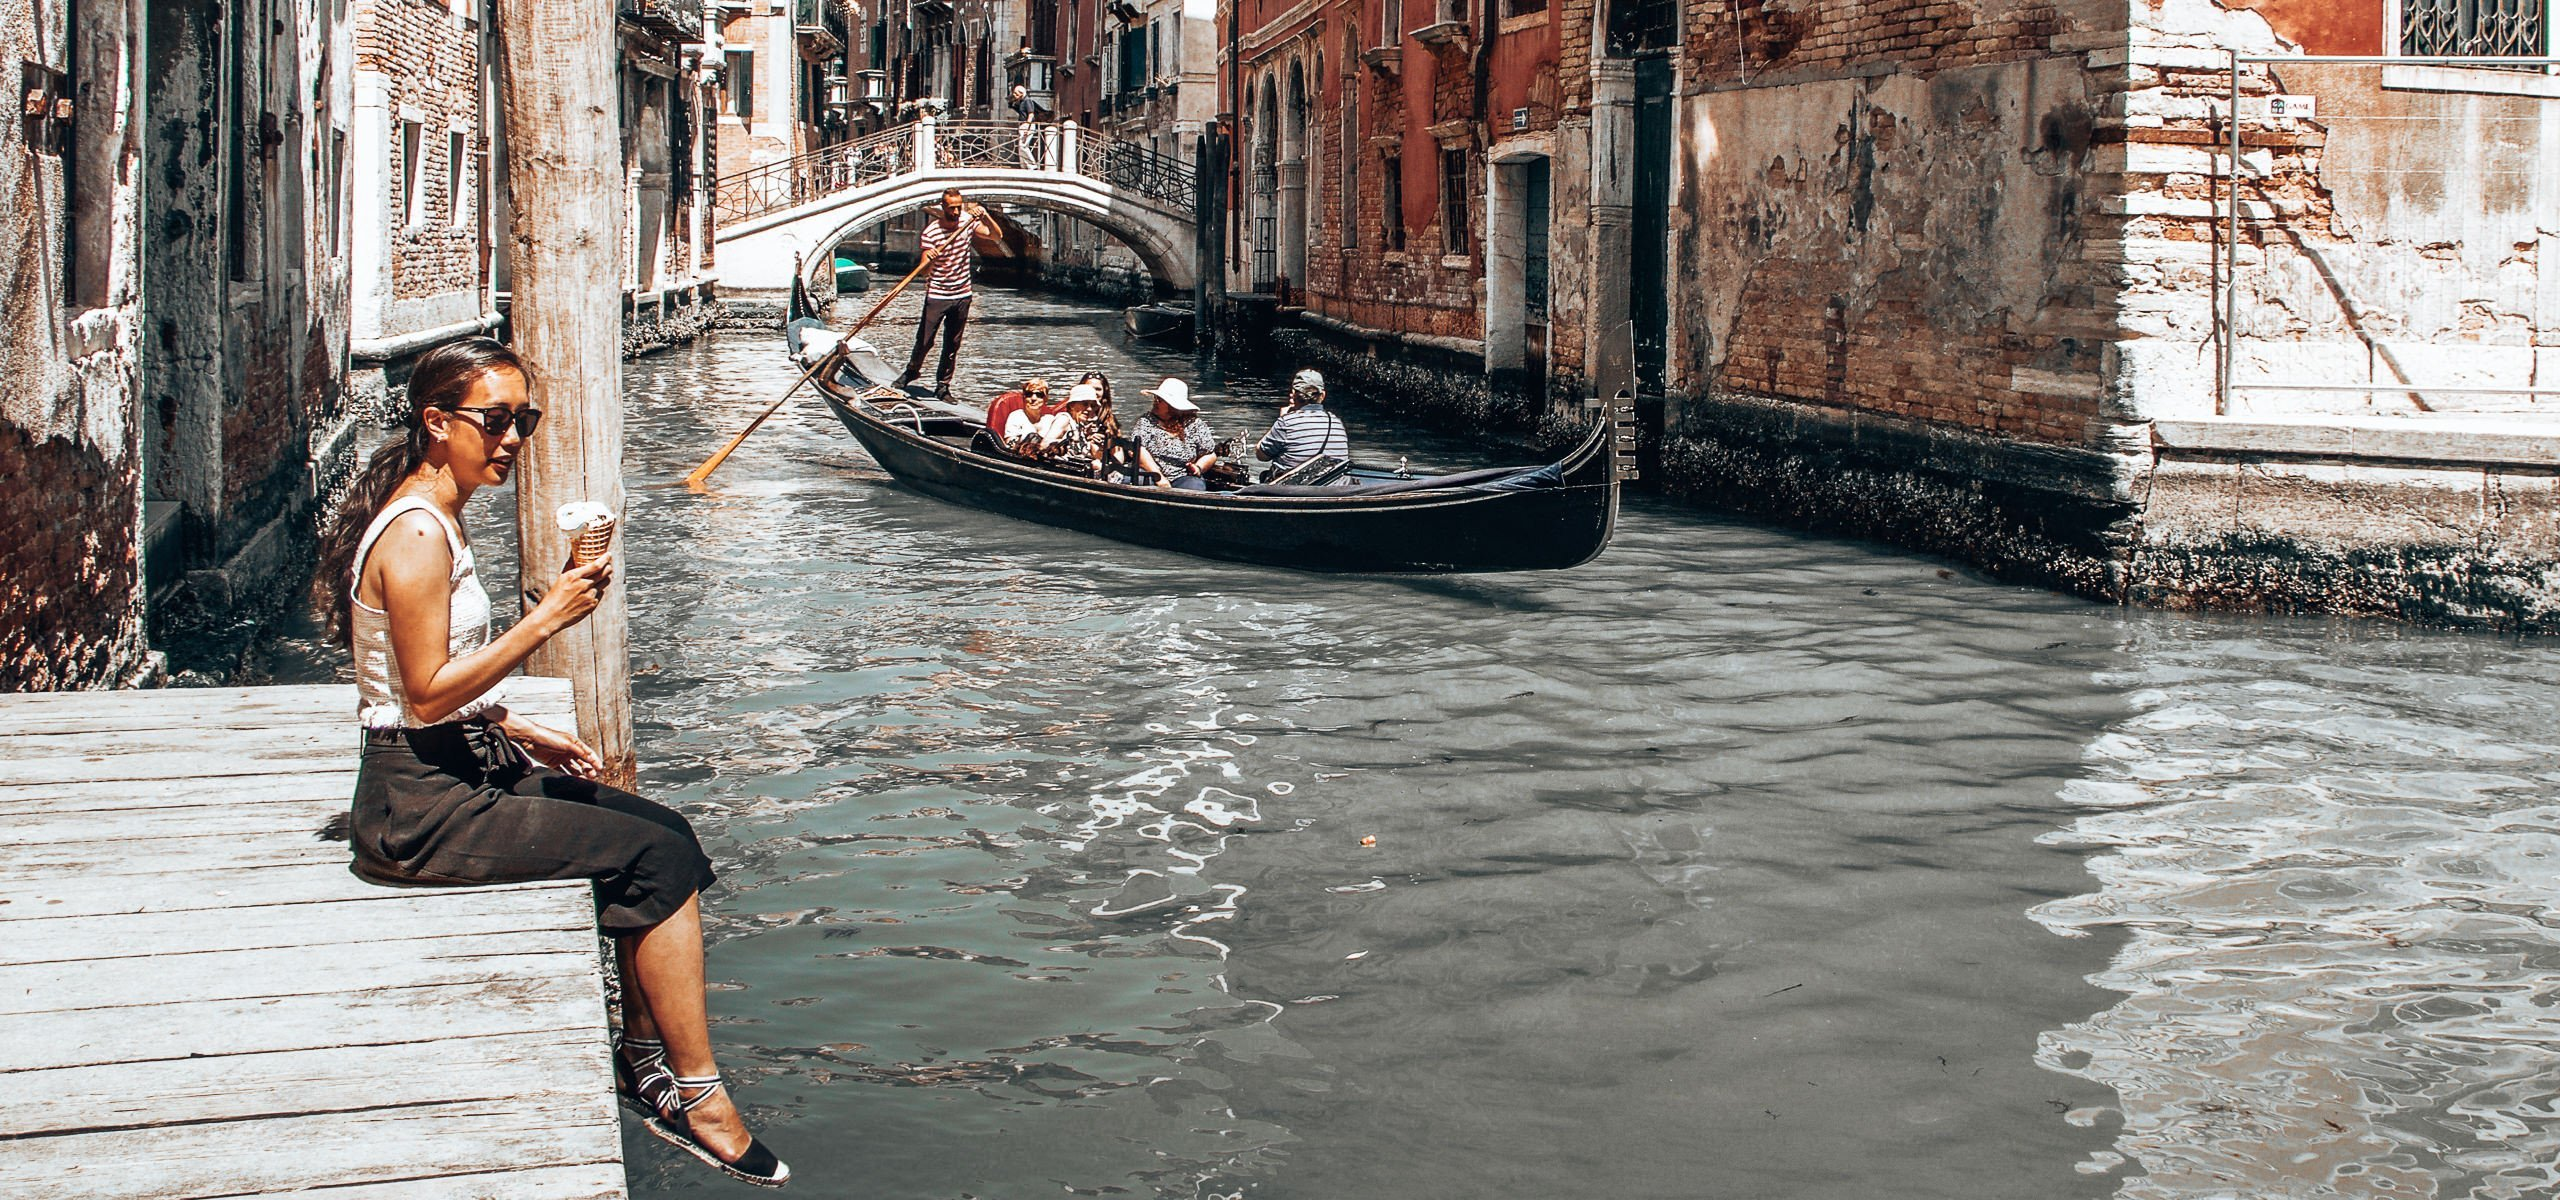 Best Things To Eat In Europe | Sitting on a wooden pier eating gelato overlooking a canal in Venice, Italy